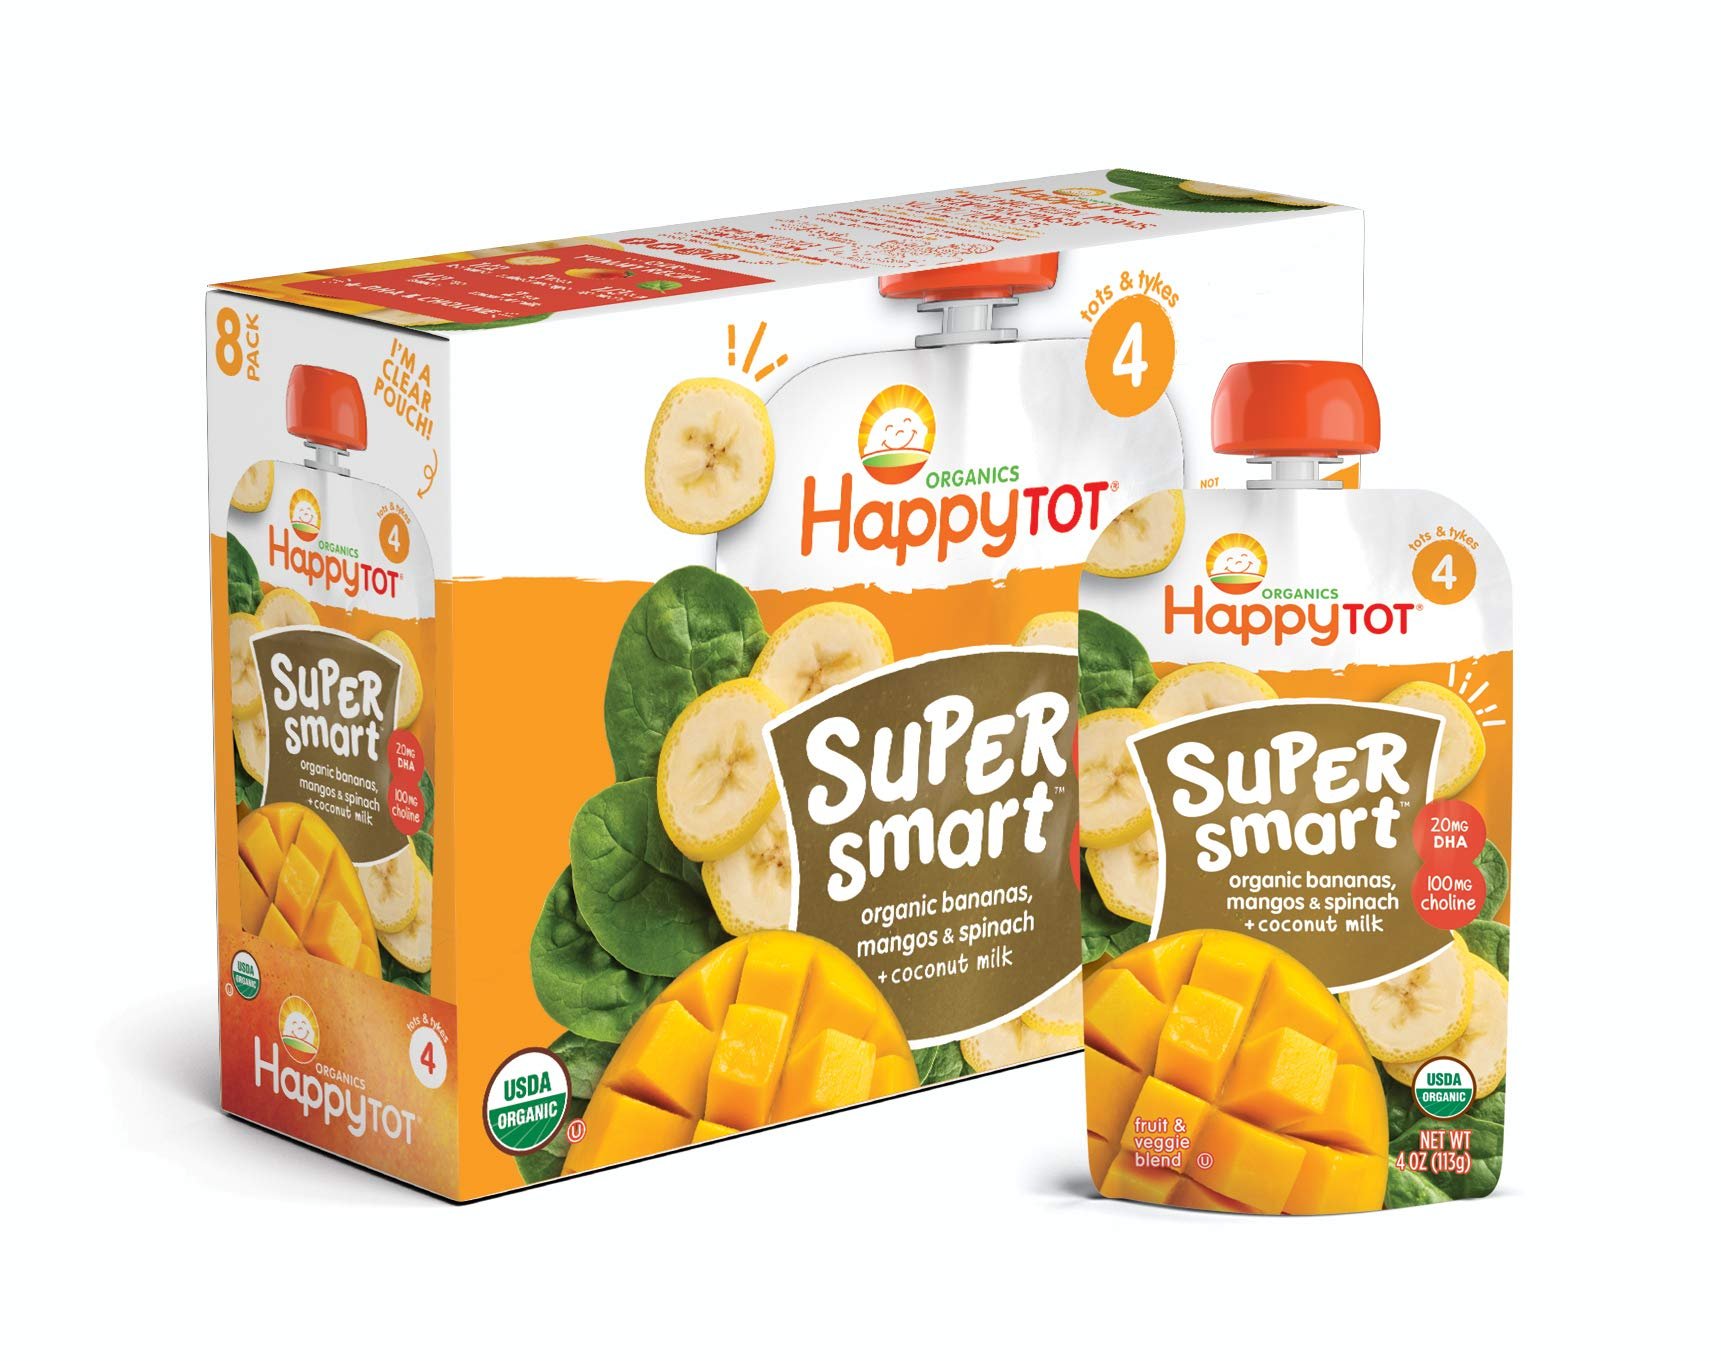 Happy Tot Organic Stage 4 Super Smart Organic Toddler Food Bananas/Mangos/Spinach Plus Coconut, 4 Ounce Pouch (Pack of 16) (Packaging May Vary) by Happy Baby